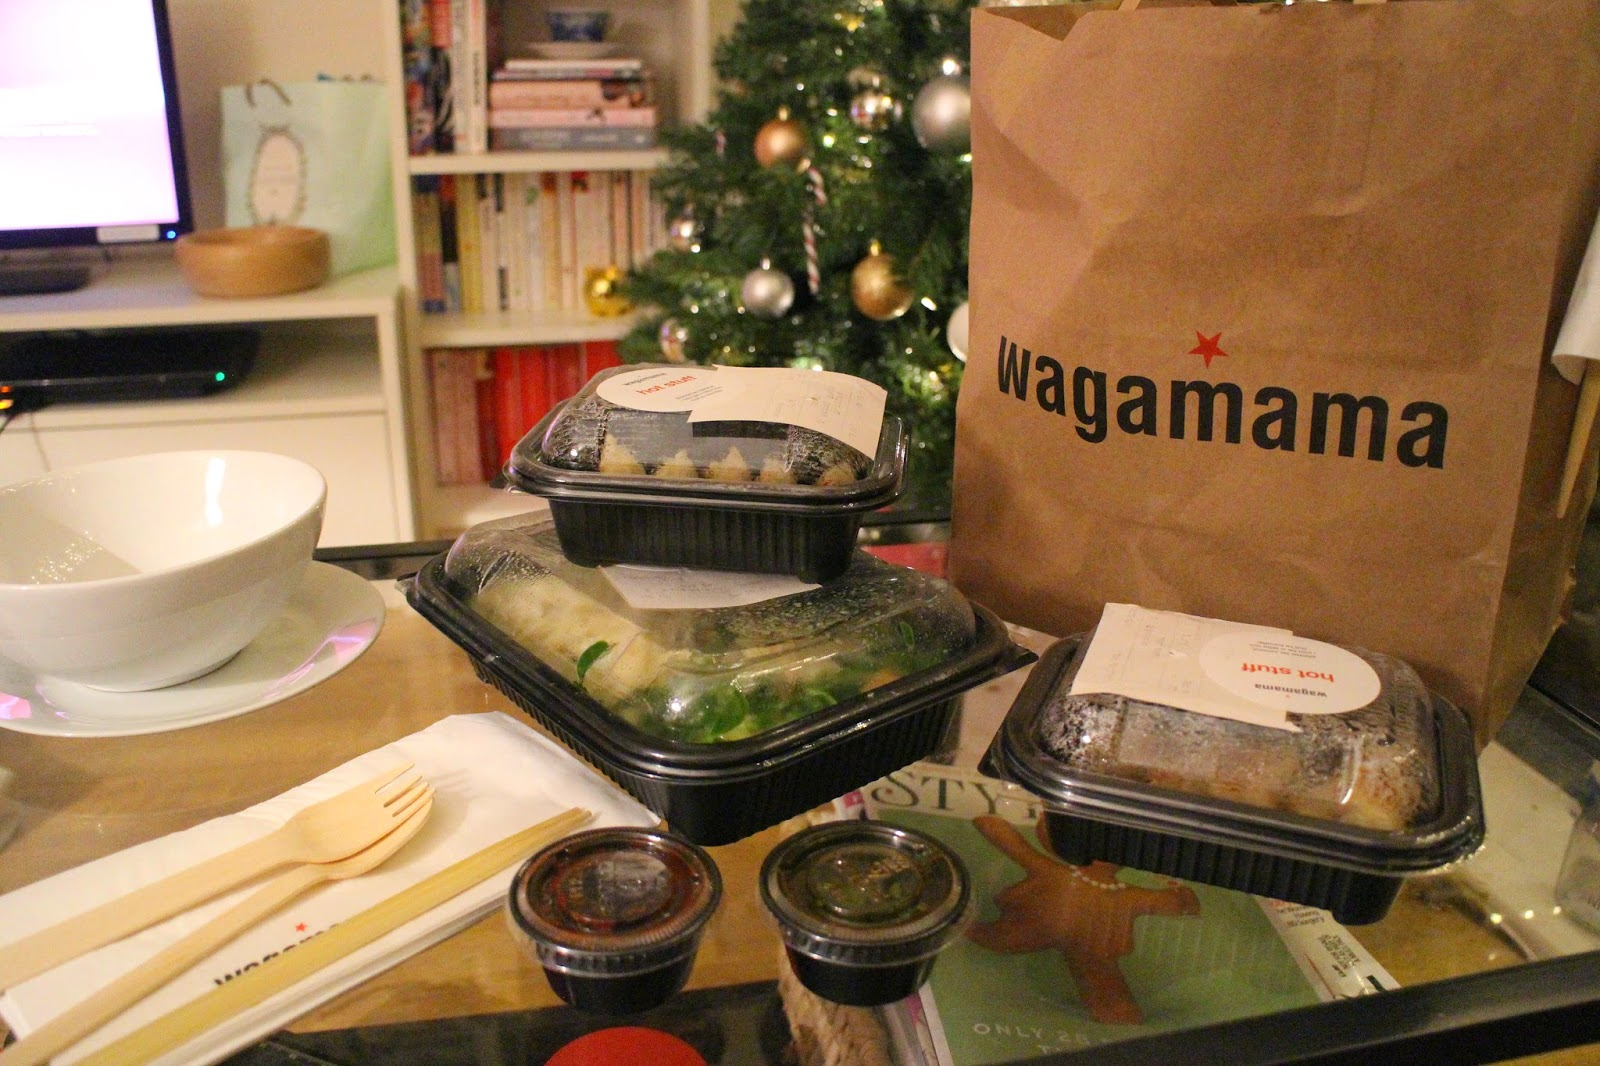 Weekend Takeout With Wagamama's